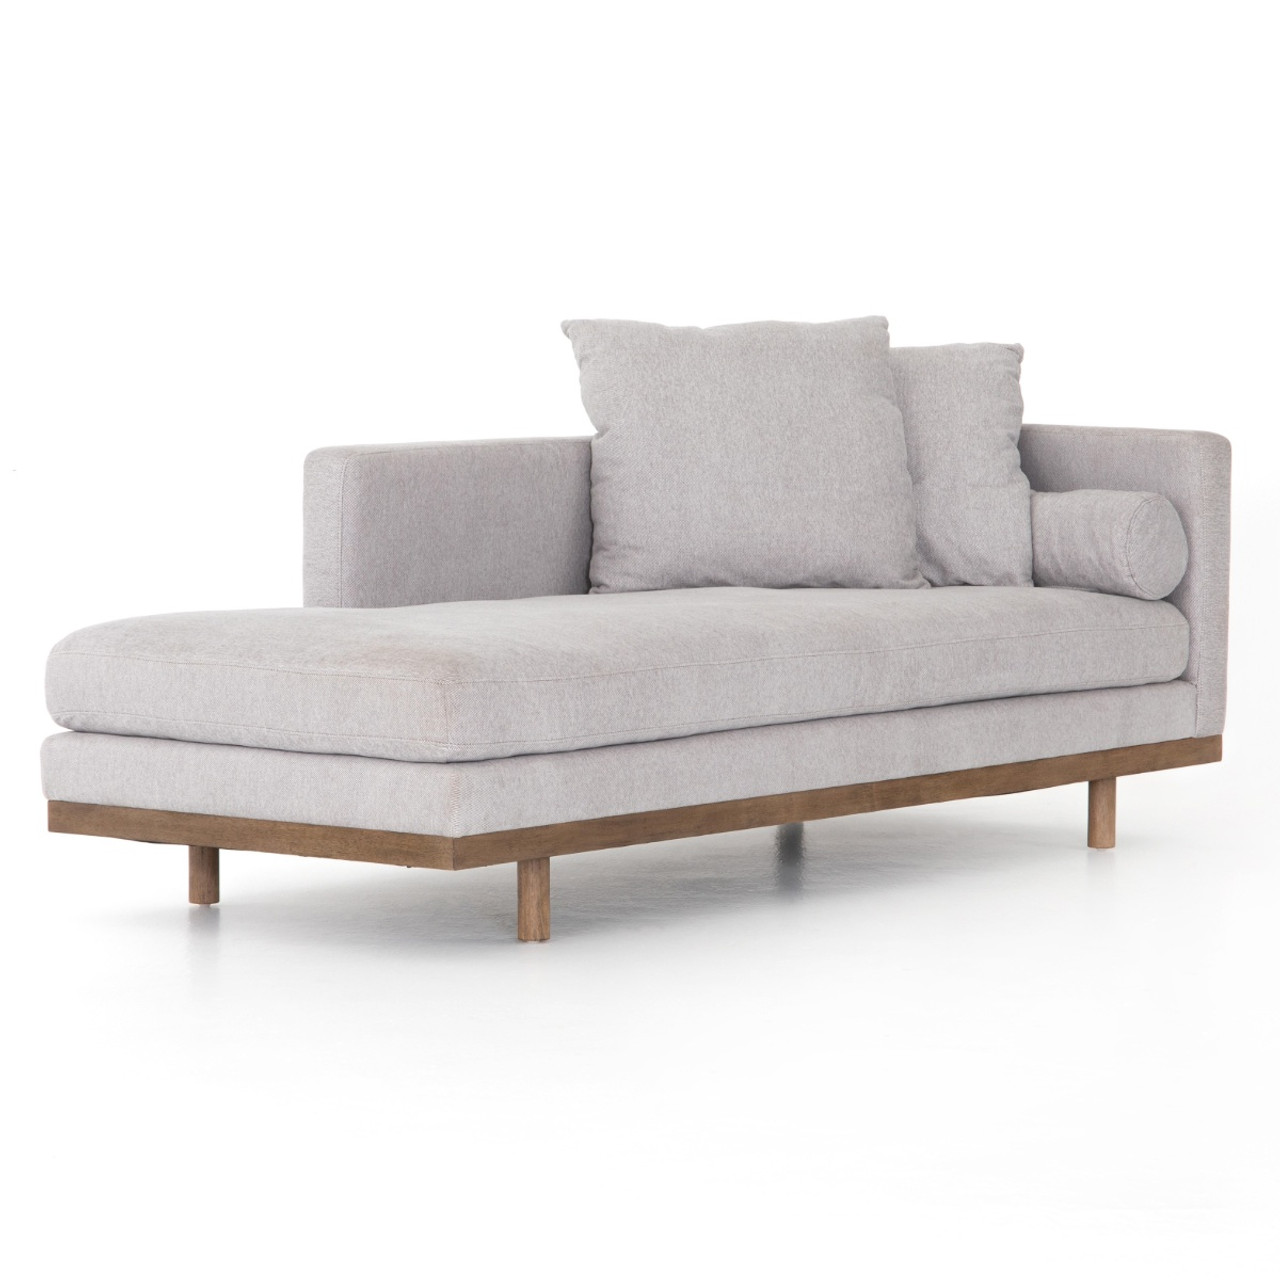 Brady Light Grey Single Chaise Lounge 85\